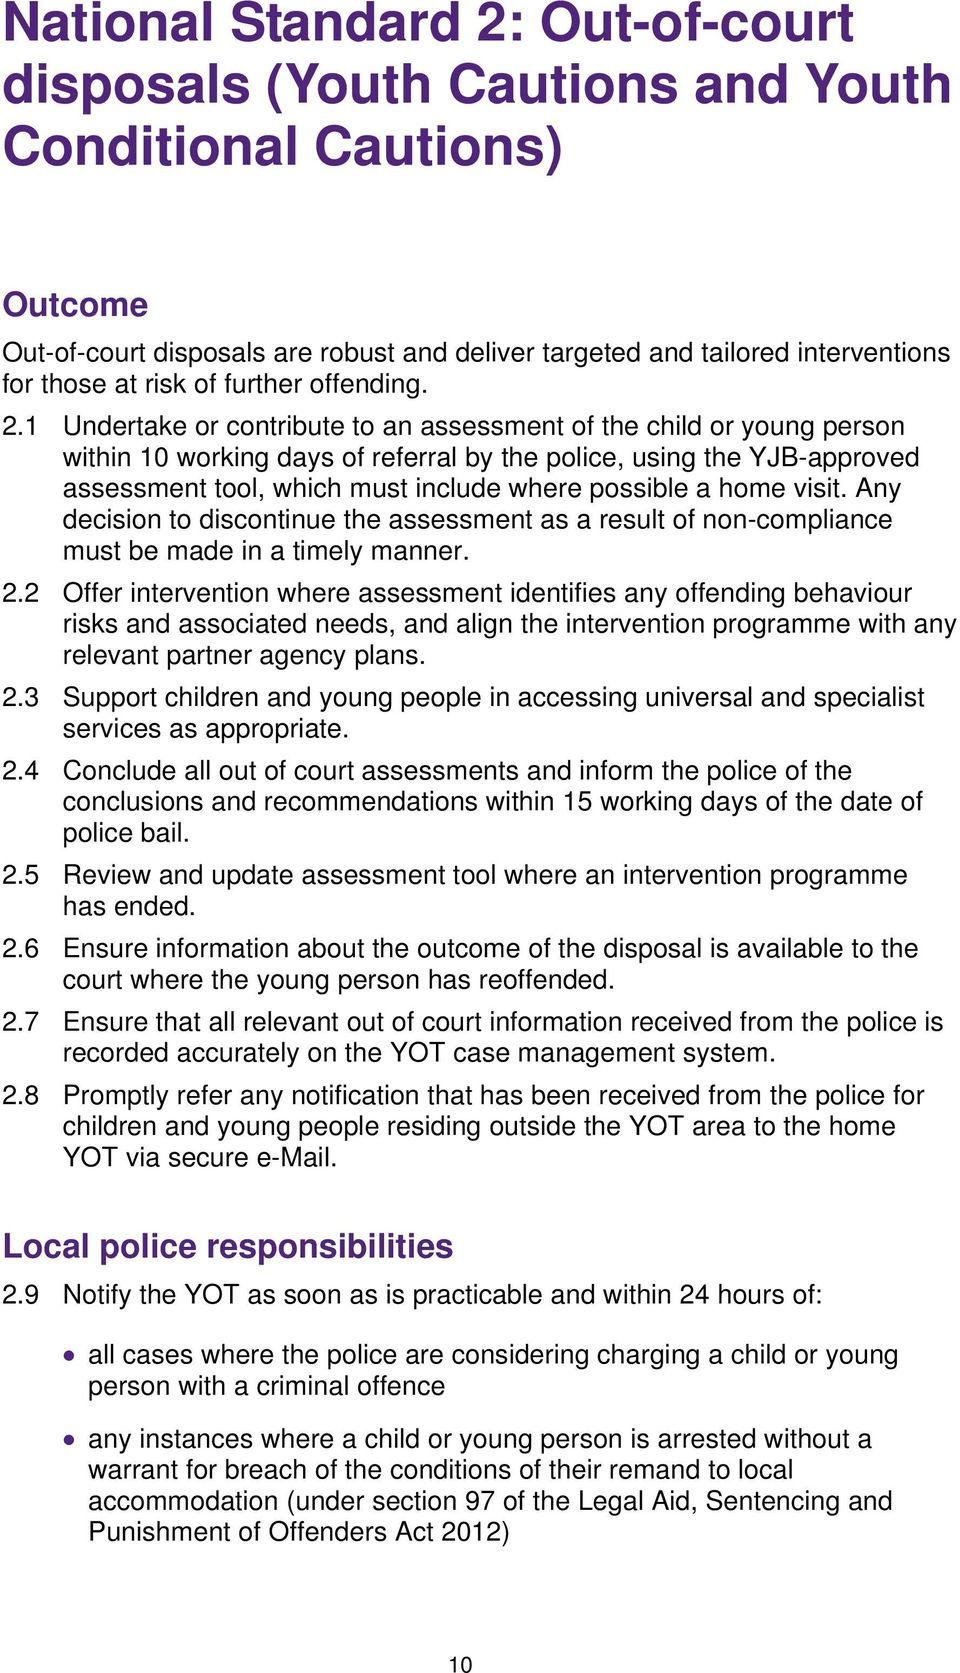 1 Undertake or contribute to an assessment of the child or young person within 10 working days of referral by the police, using the YJB-approved assessment tool, which must include where possible a